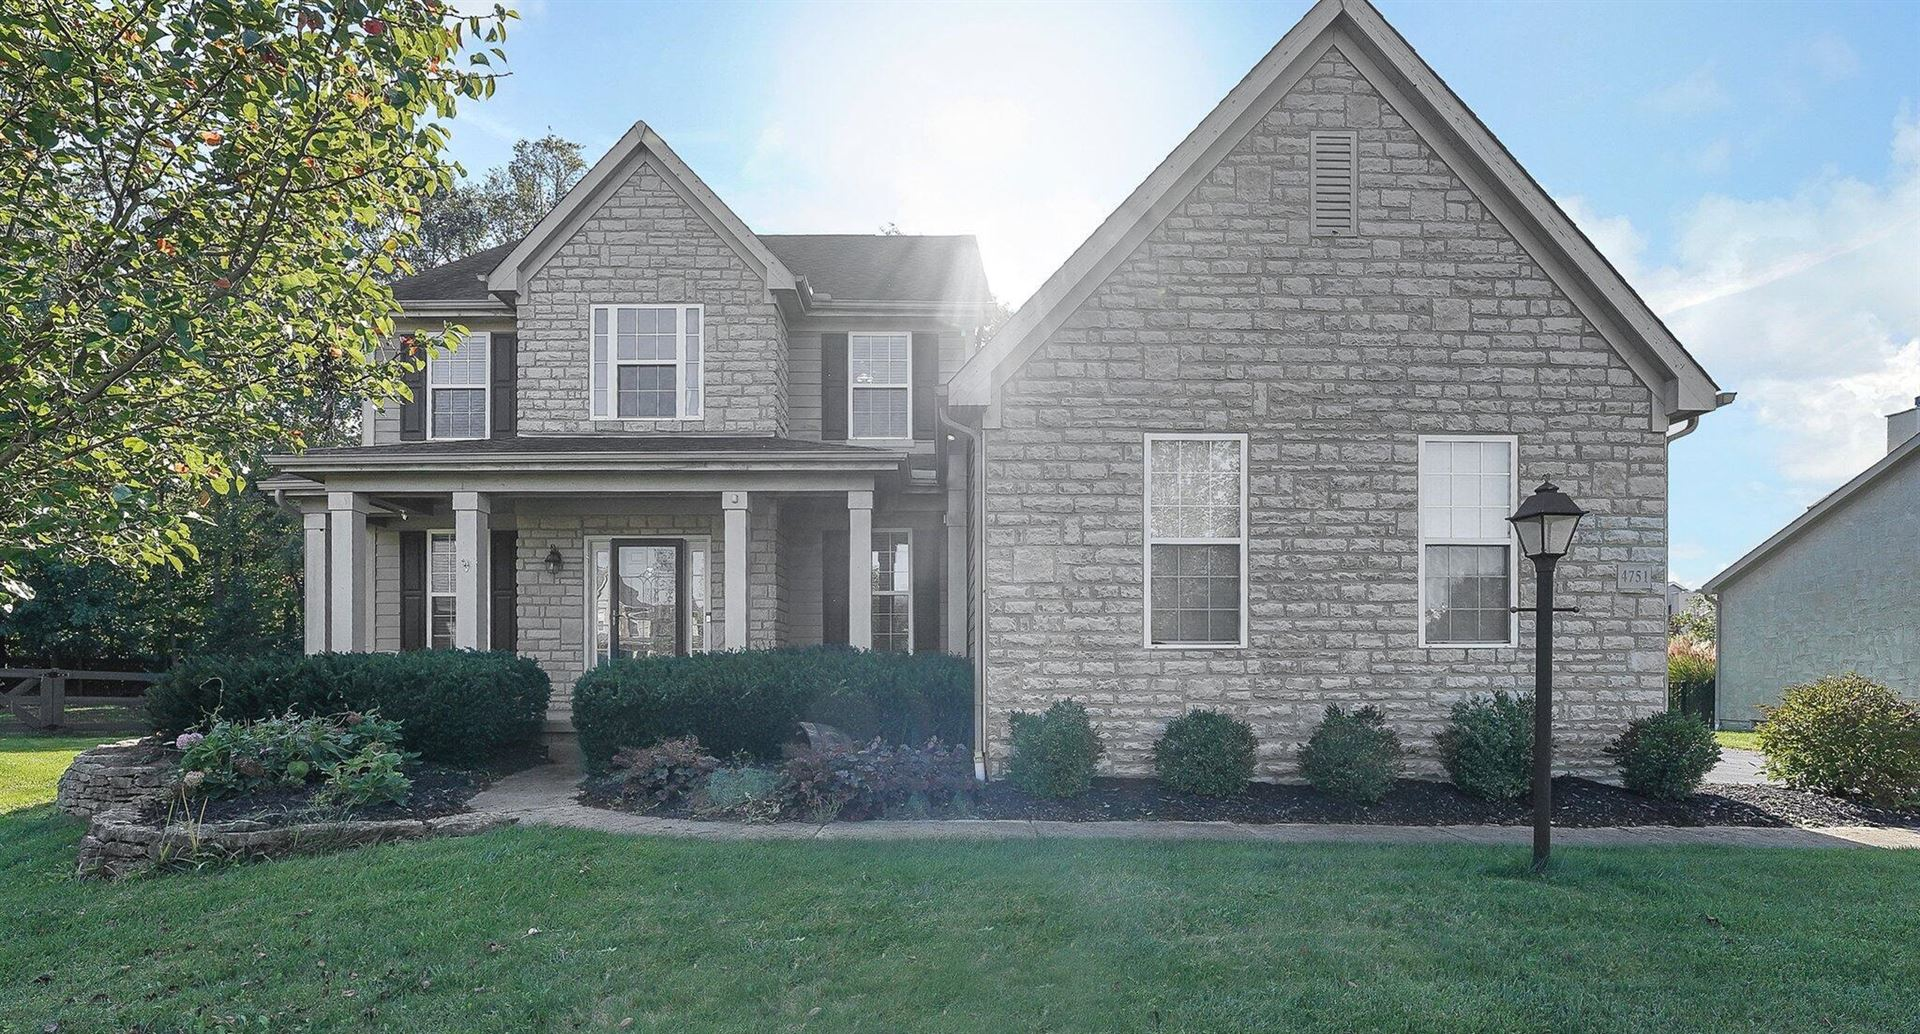 Photo of 4751 Stone View Court, Powell, OH 43065 (MLS # 221040865)